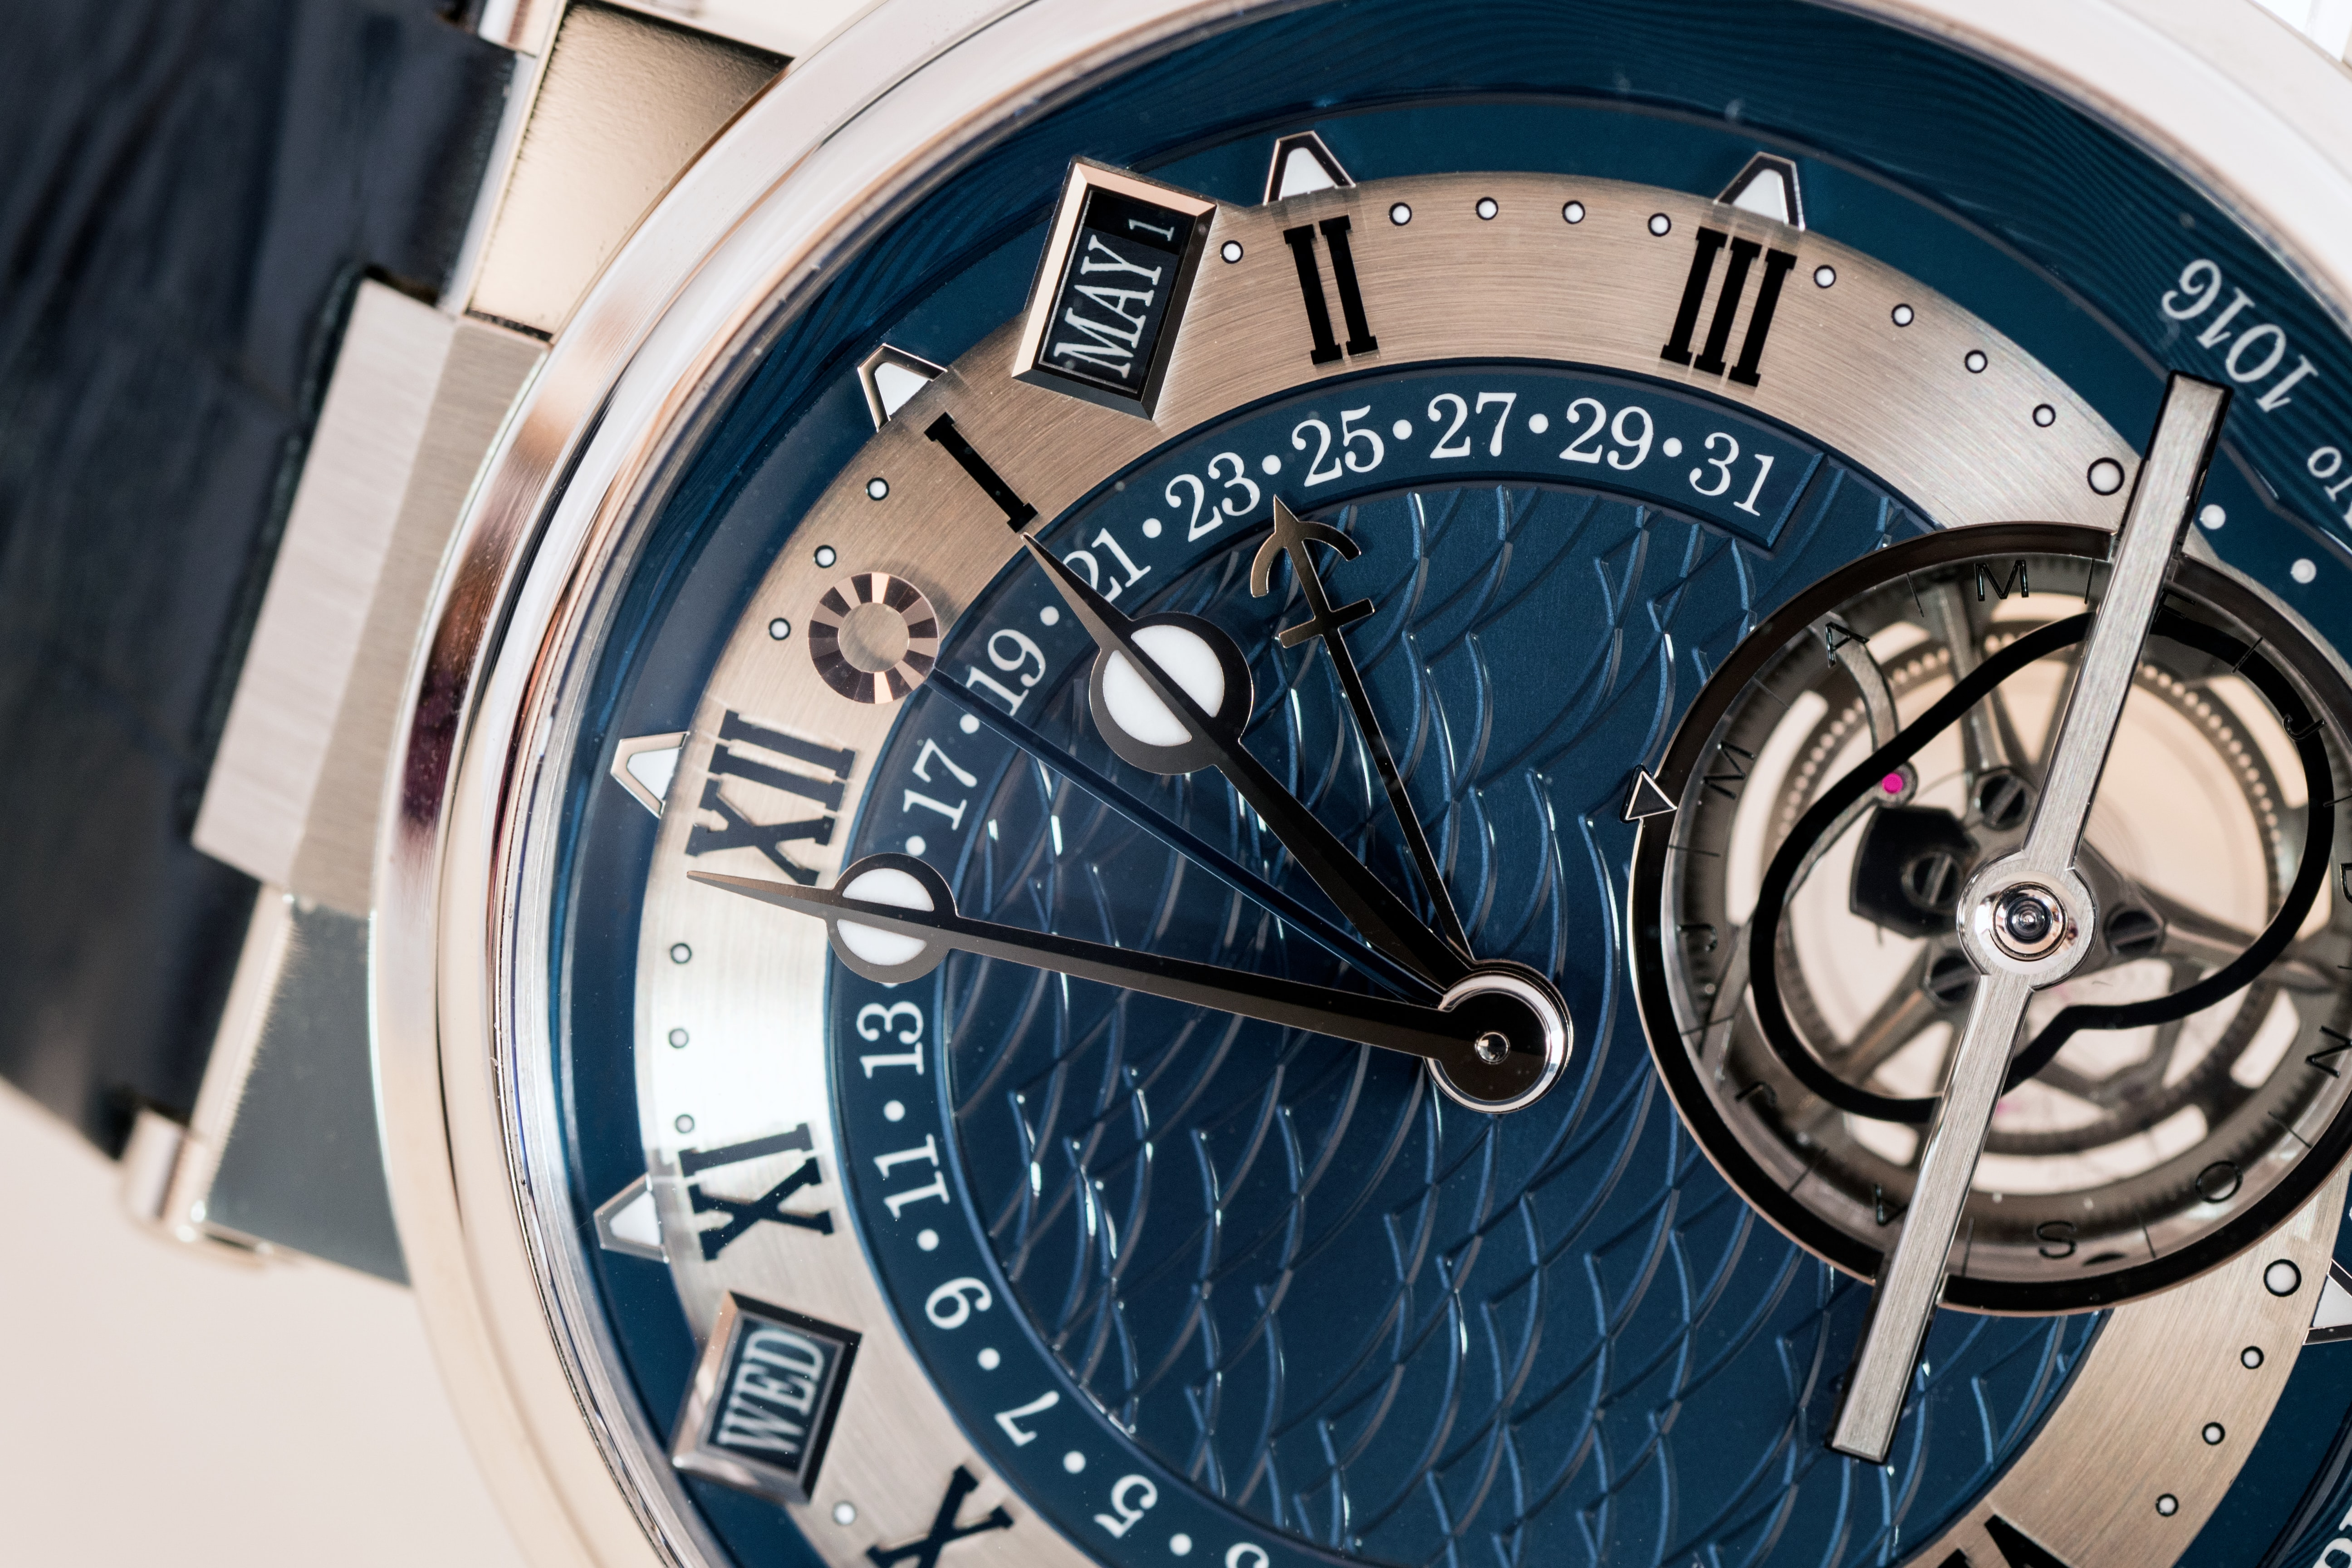 Breguet 5887 equation of time hand, hour and minute hands, and date hand Introducing: The Breguet Marine quation Marchante 5887 Introducing: The Breguet Marine quation Marchante 5887 P5241041